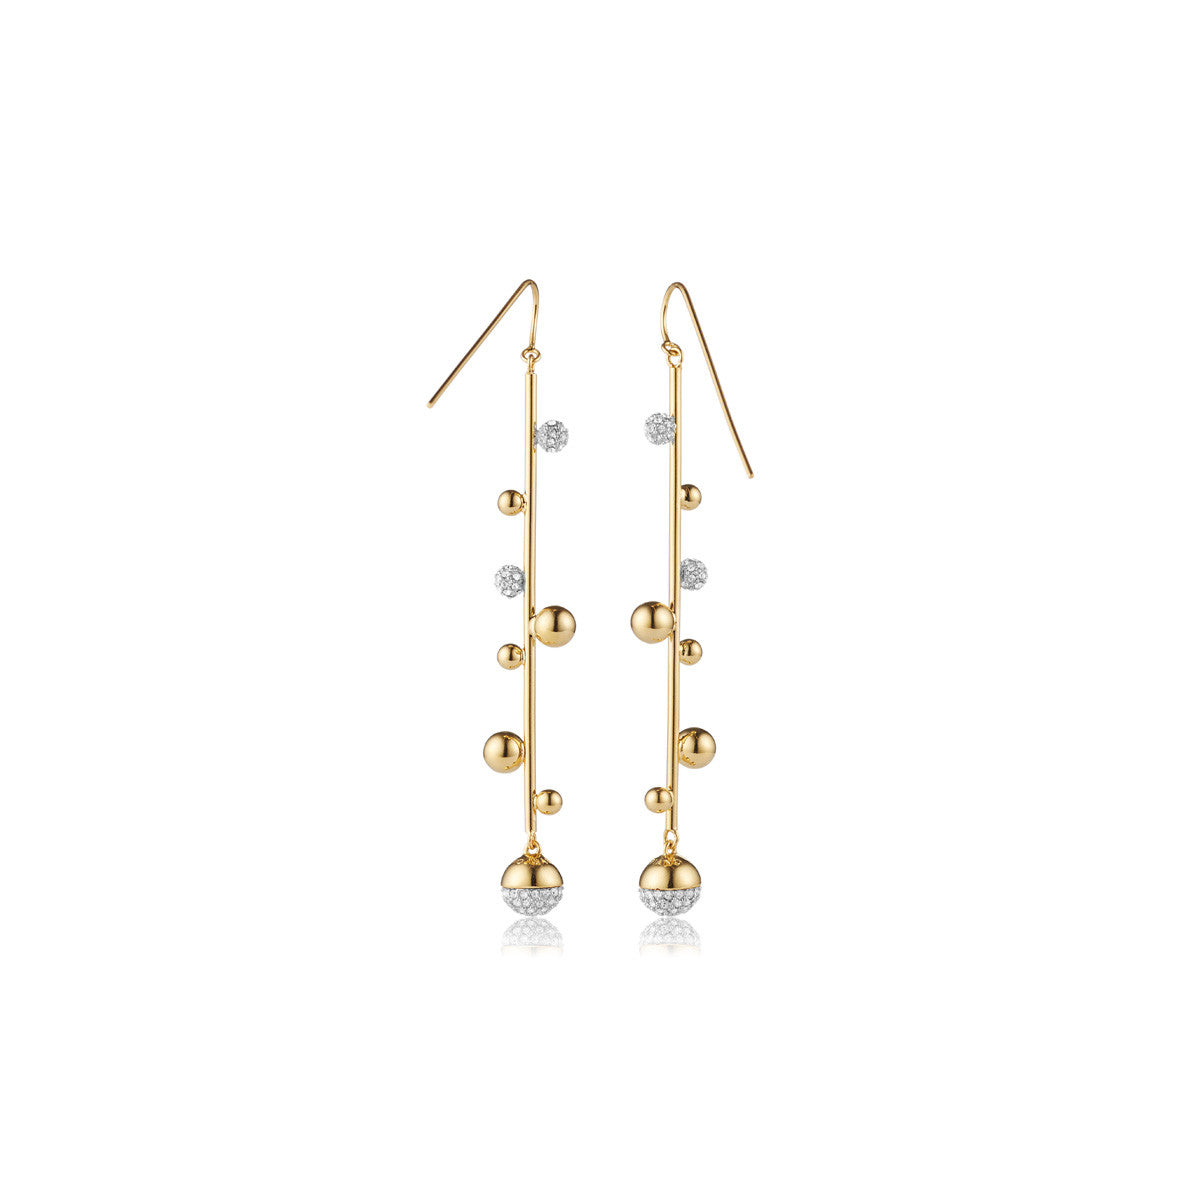 Solid brass, 18K gold plated Galaxy earrings set with Swarovski® crystal pavè detailing – back